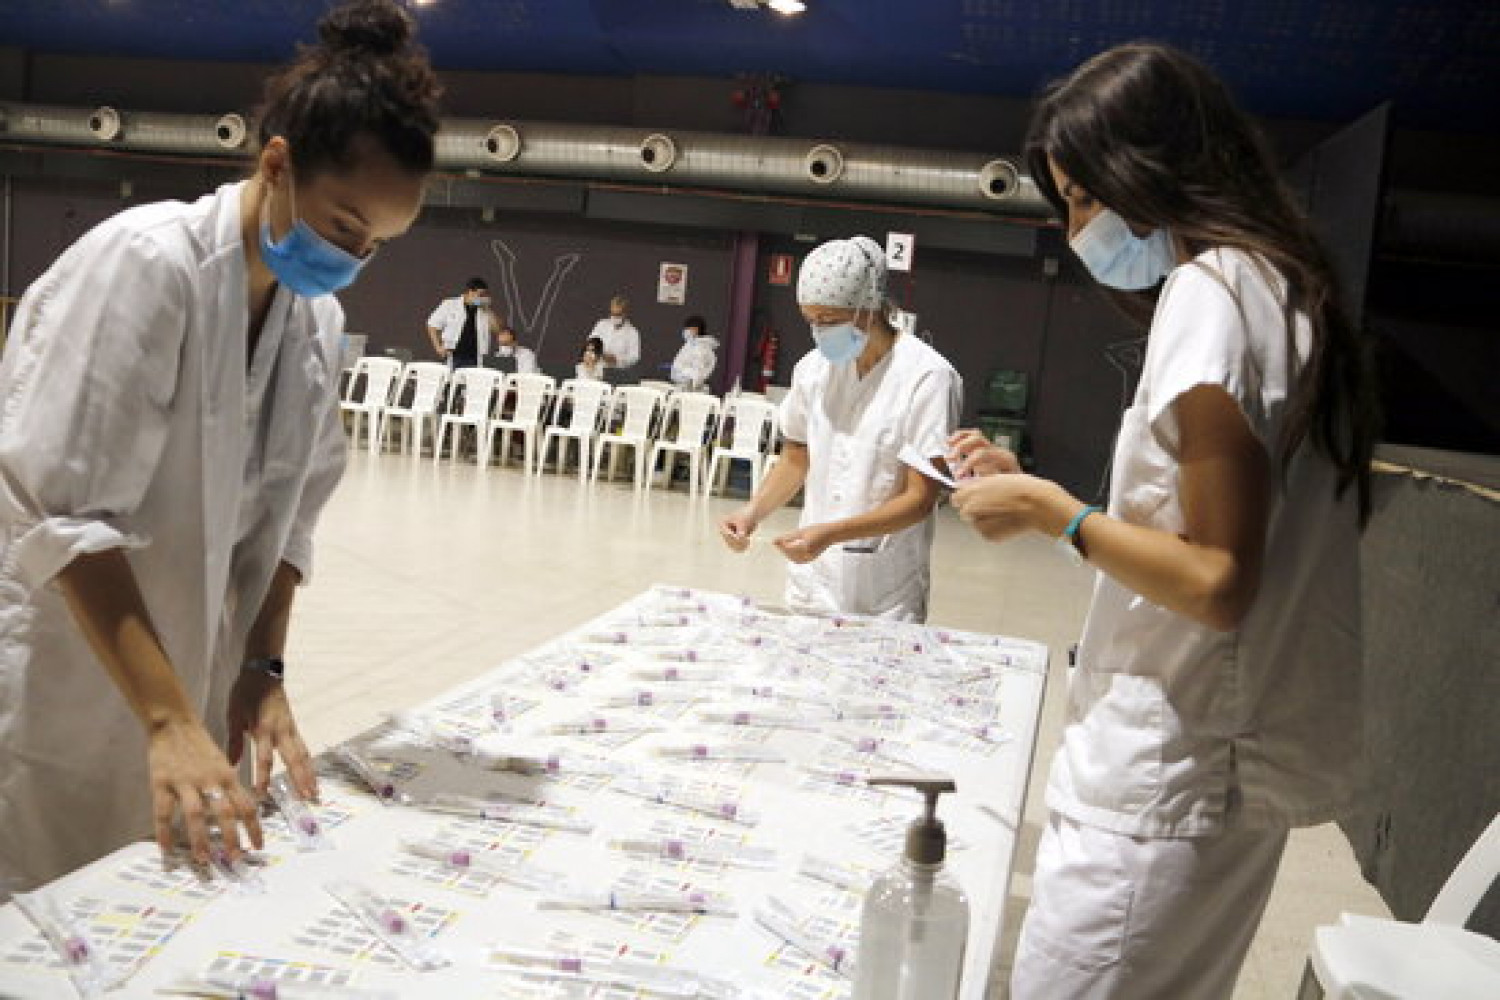 Some health professionals prepare a targeted mass Covid-19 screening in Tàrrega, western Catalonia, on September 7, 2020 (by Oriol Bosch)